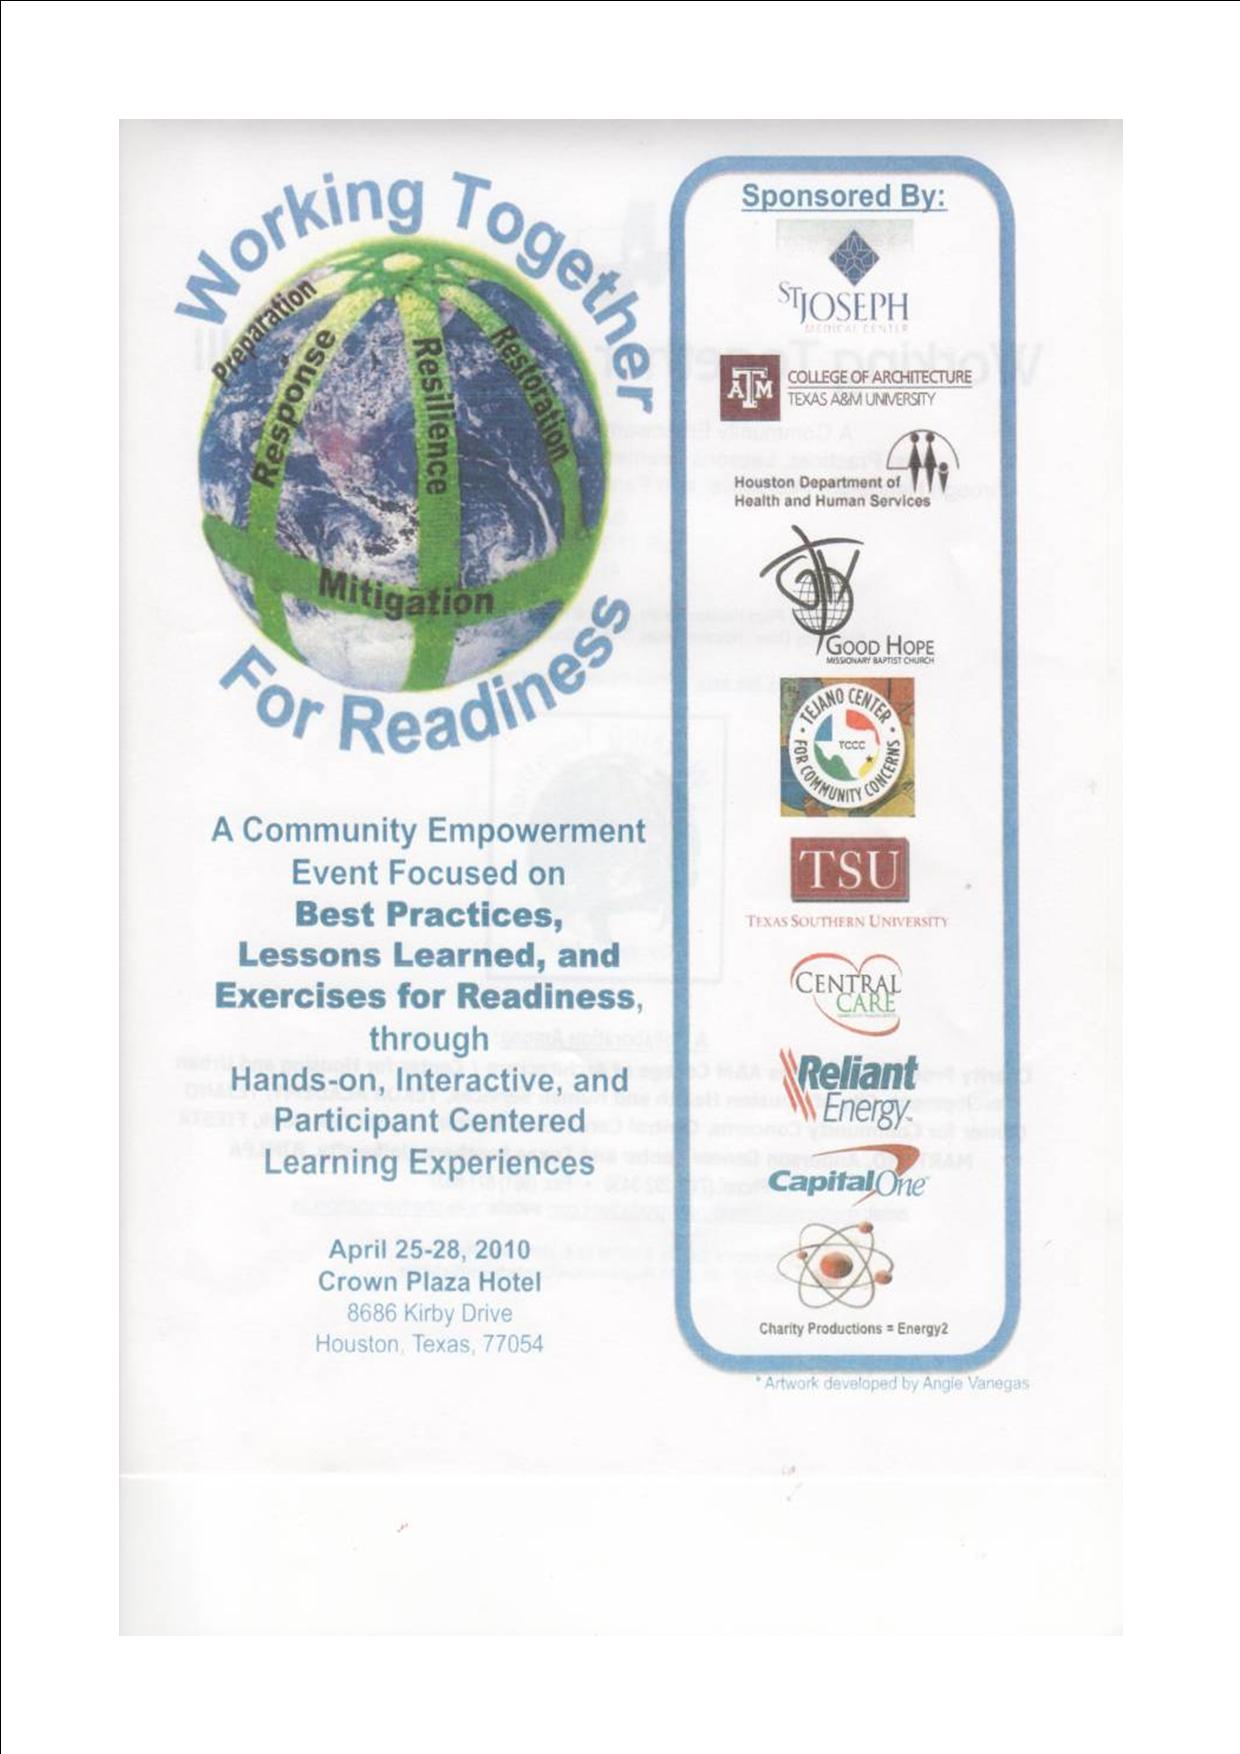 Working Together For Readiness Conference Report